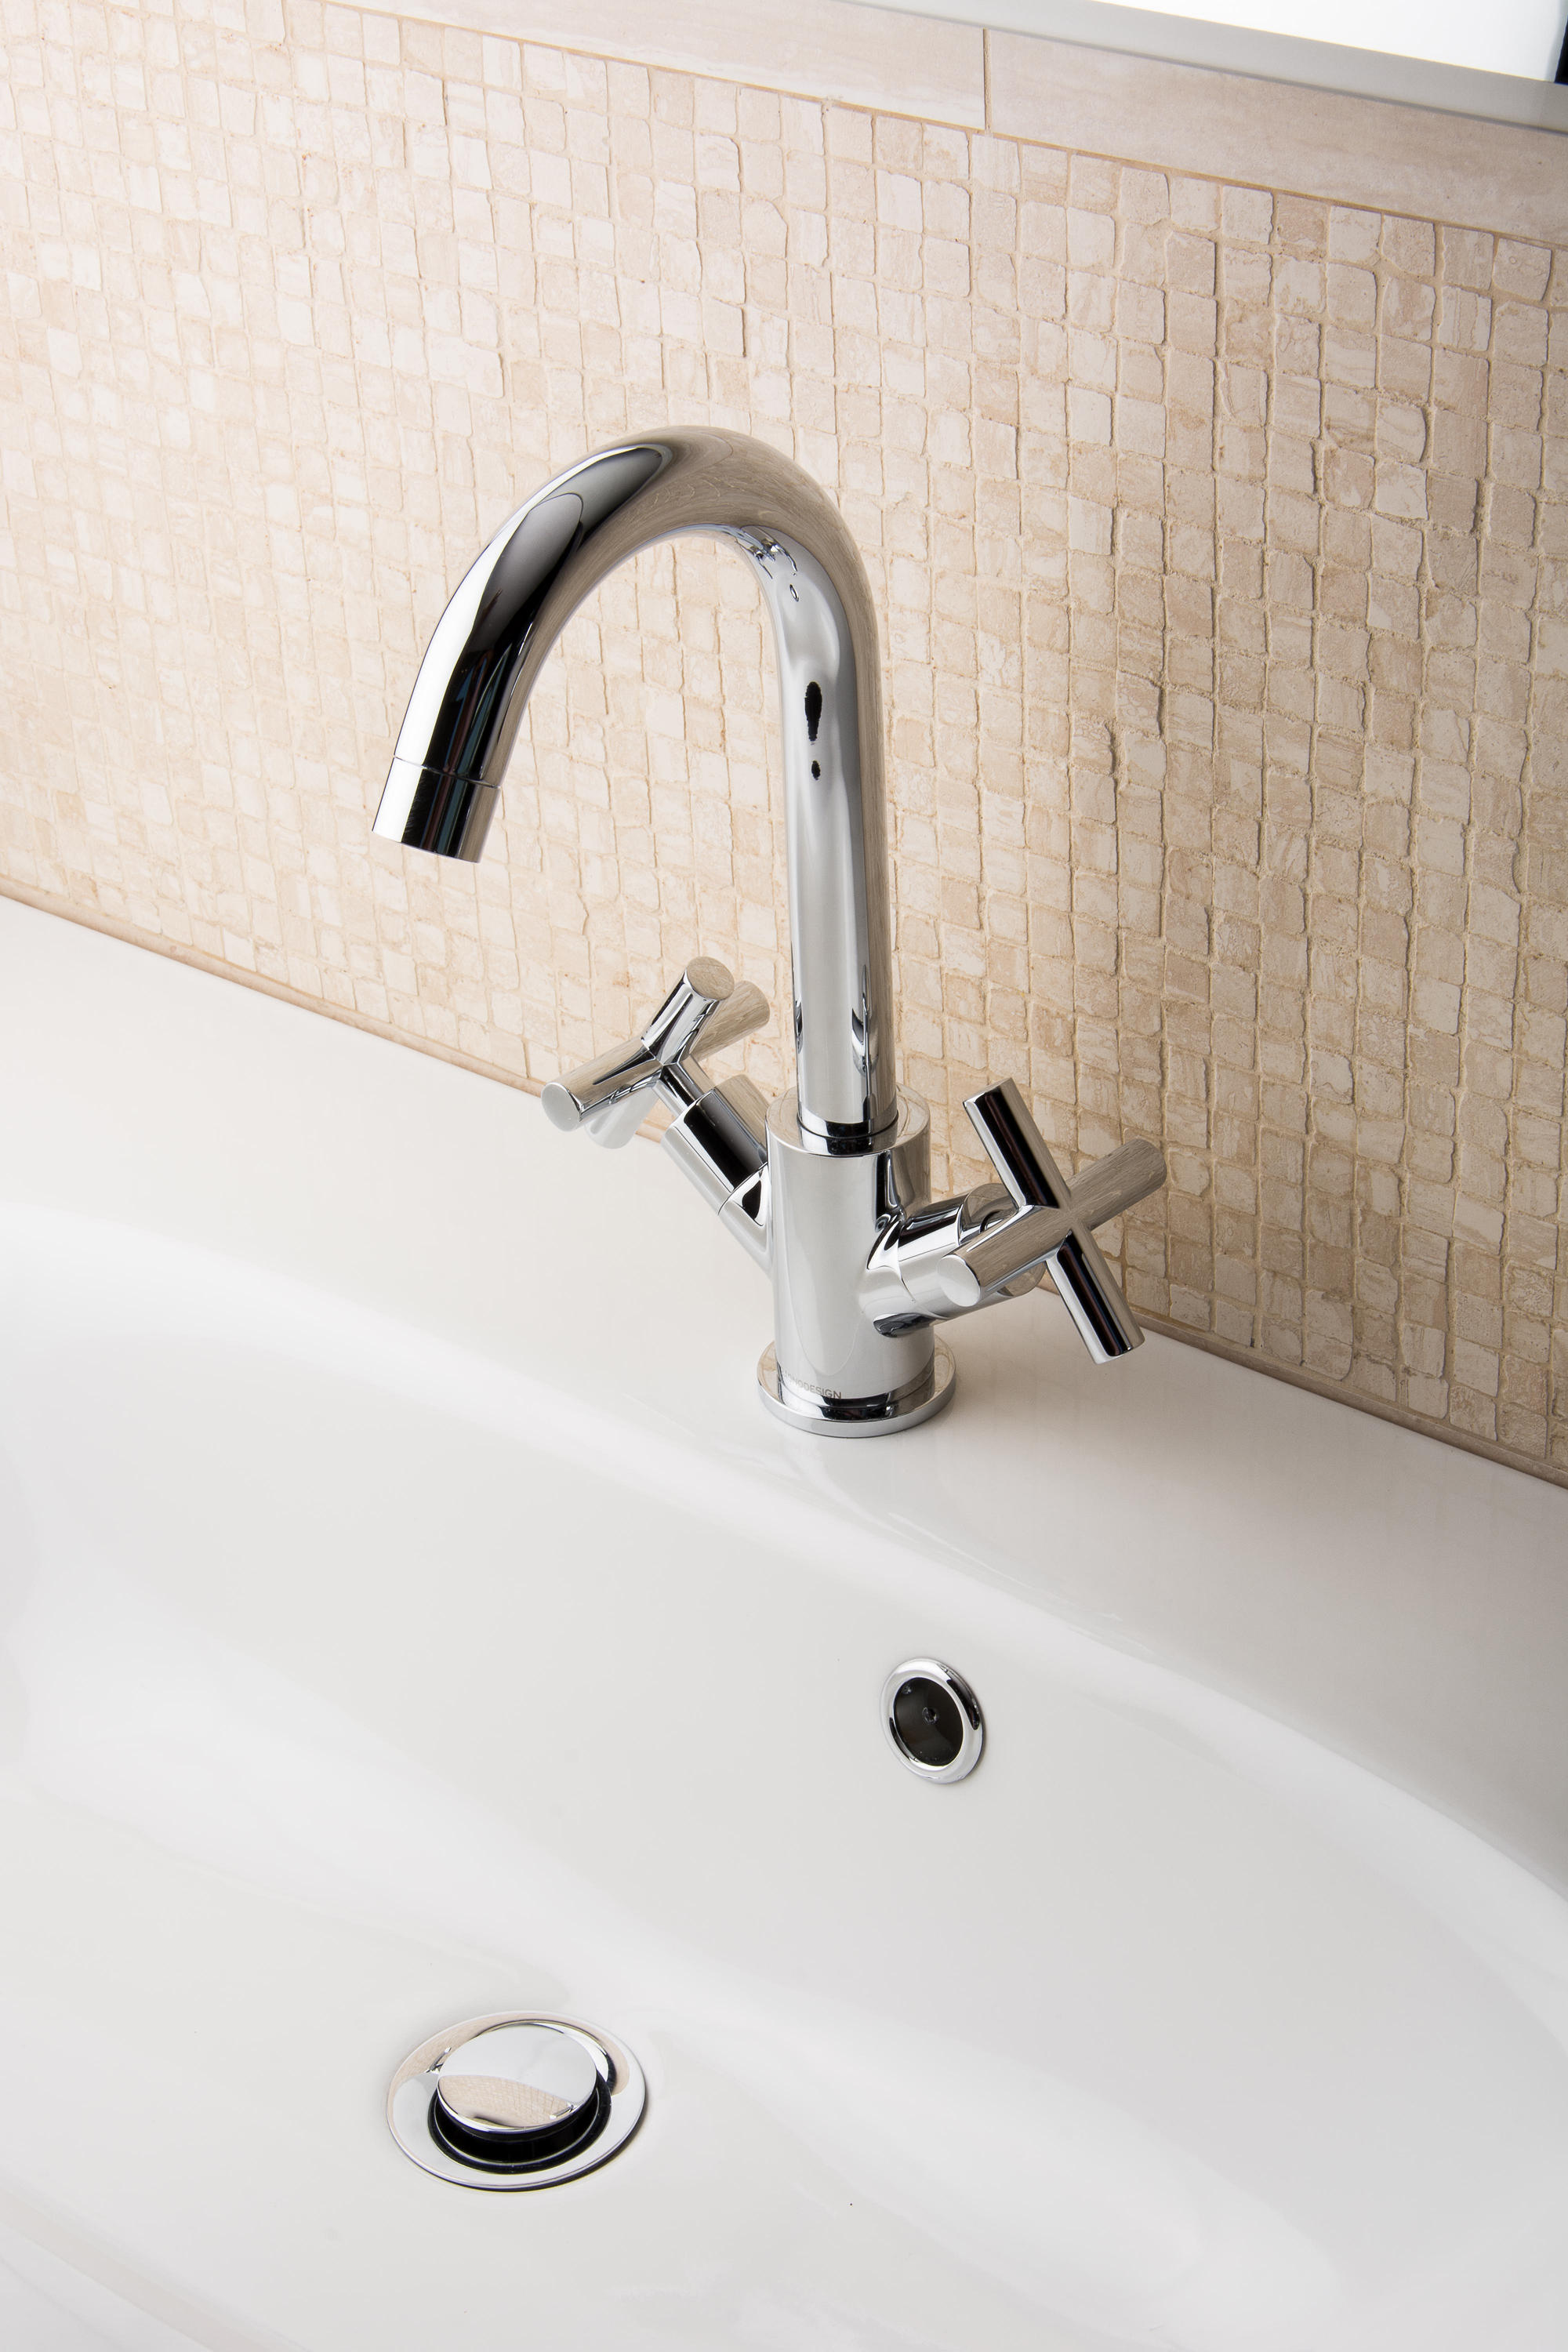 Bagnodesign Basin Taps Ibiza Mono Basin Mixer With Pop Up Waste Wash Basin Taps From